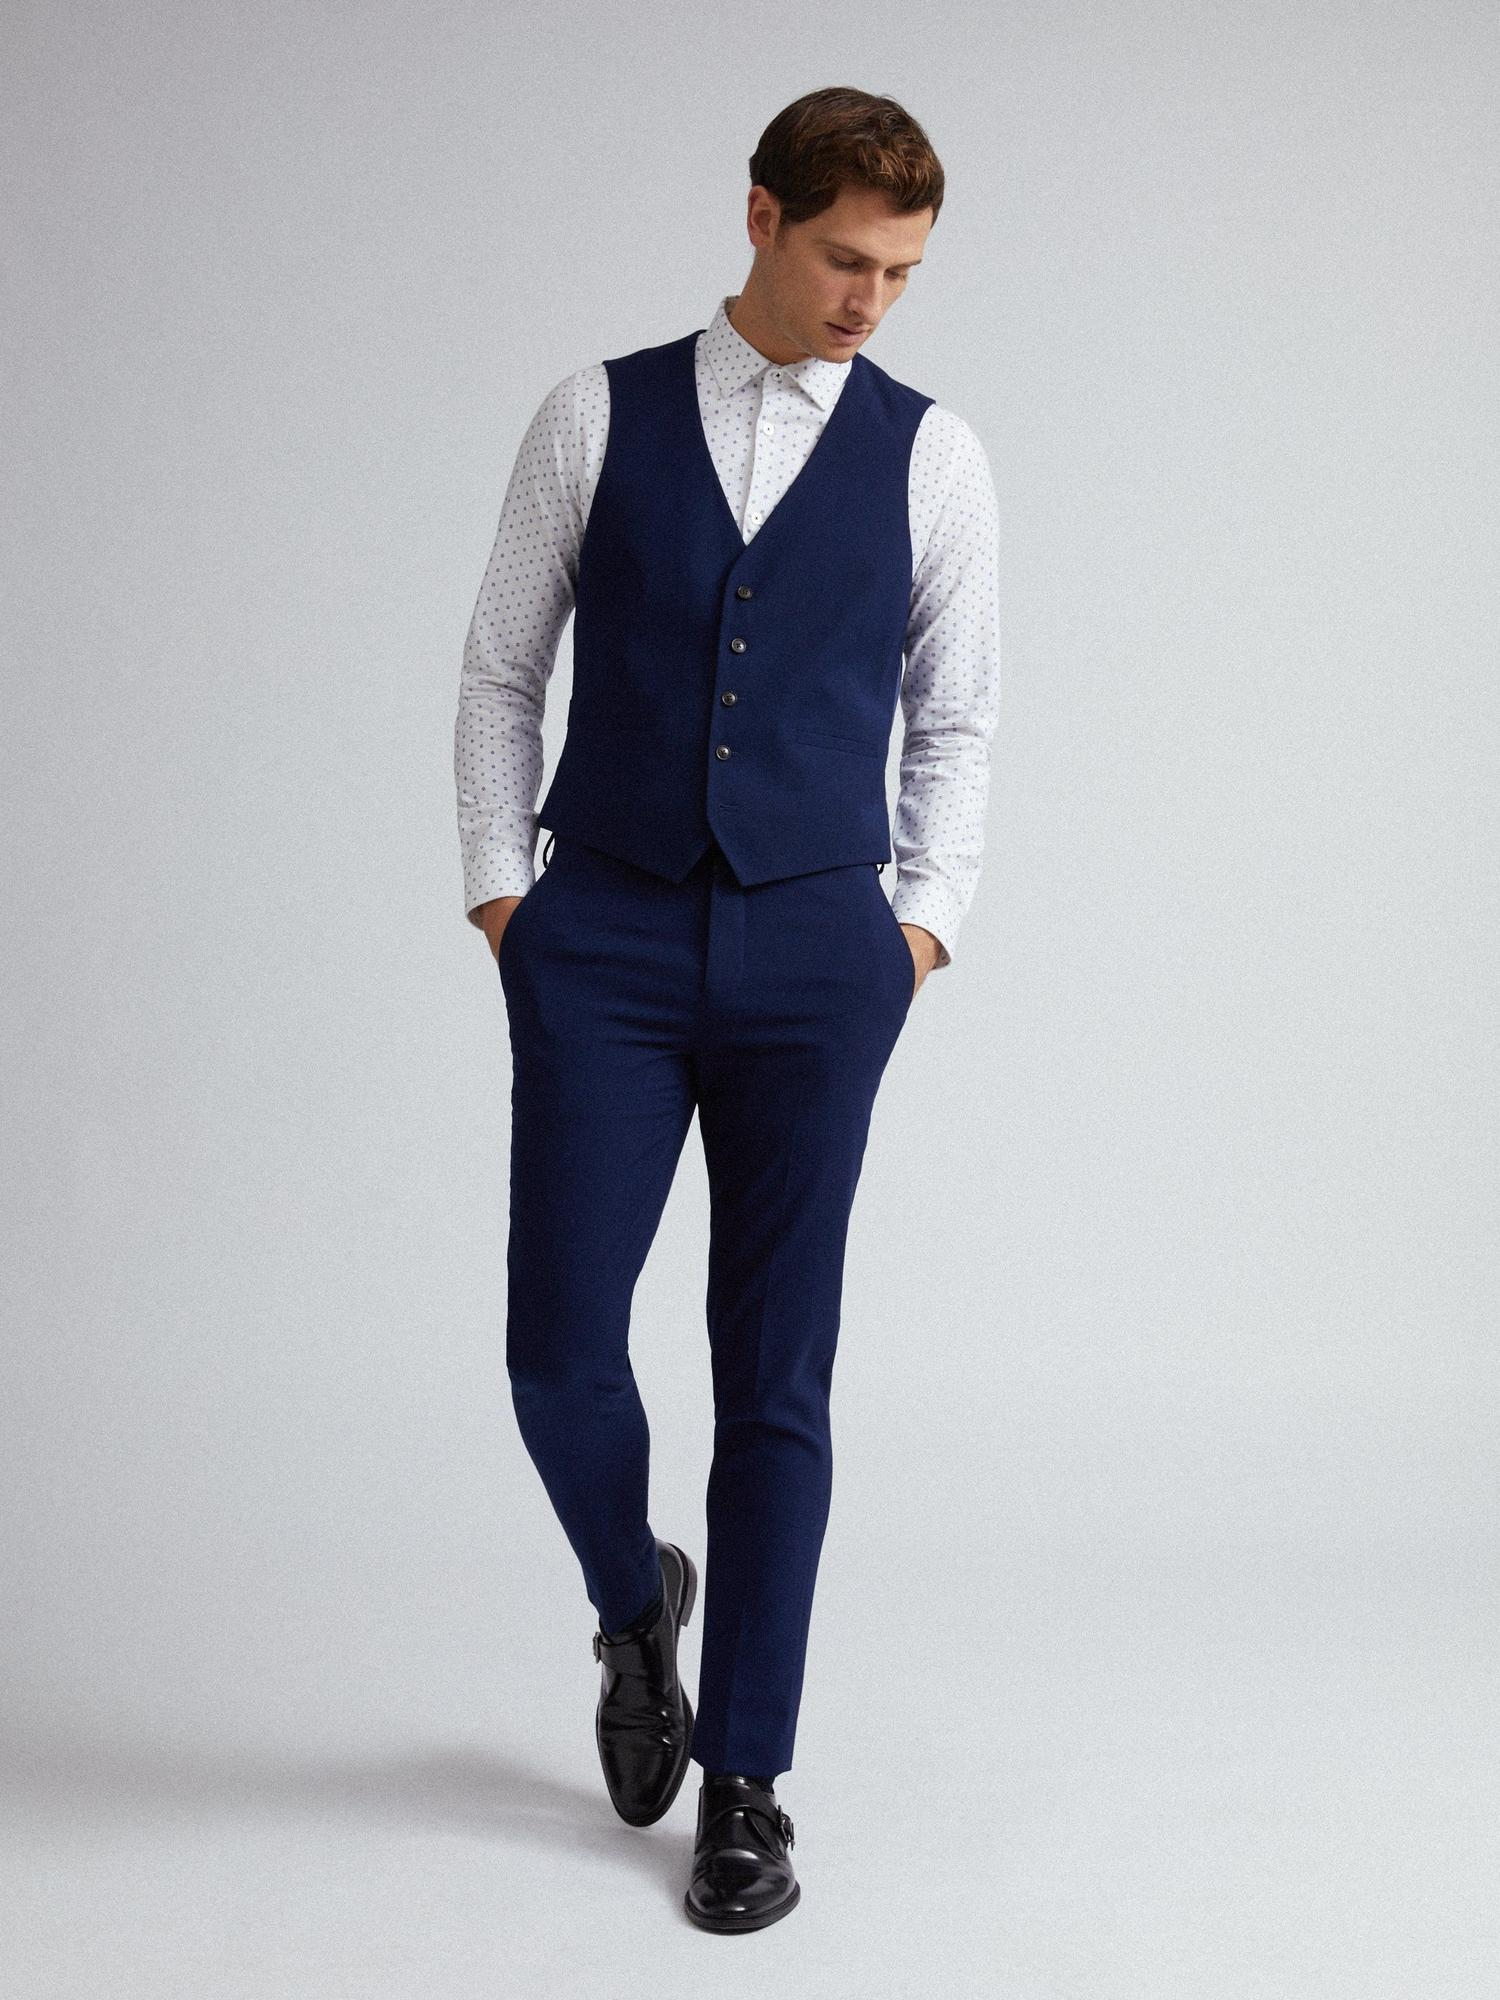 148 Blue Texture Skinny Fit Suit Trousers image number 4